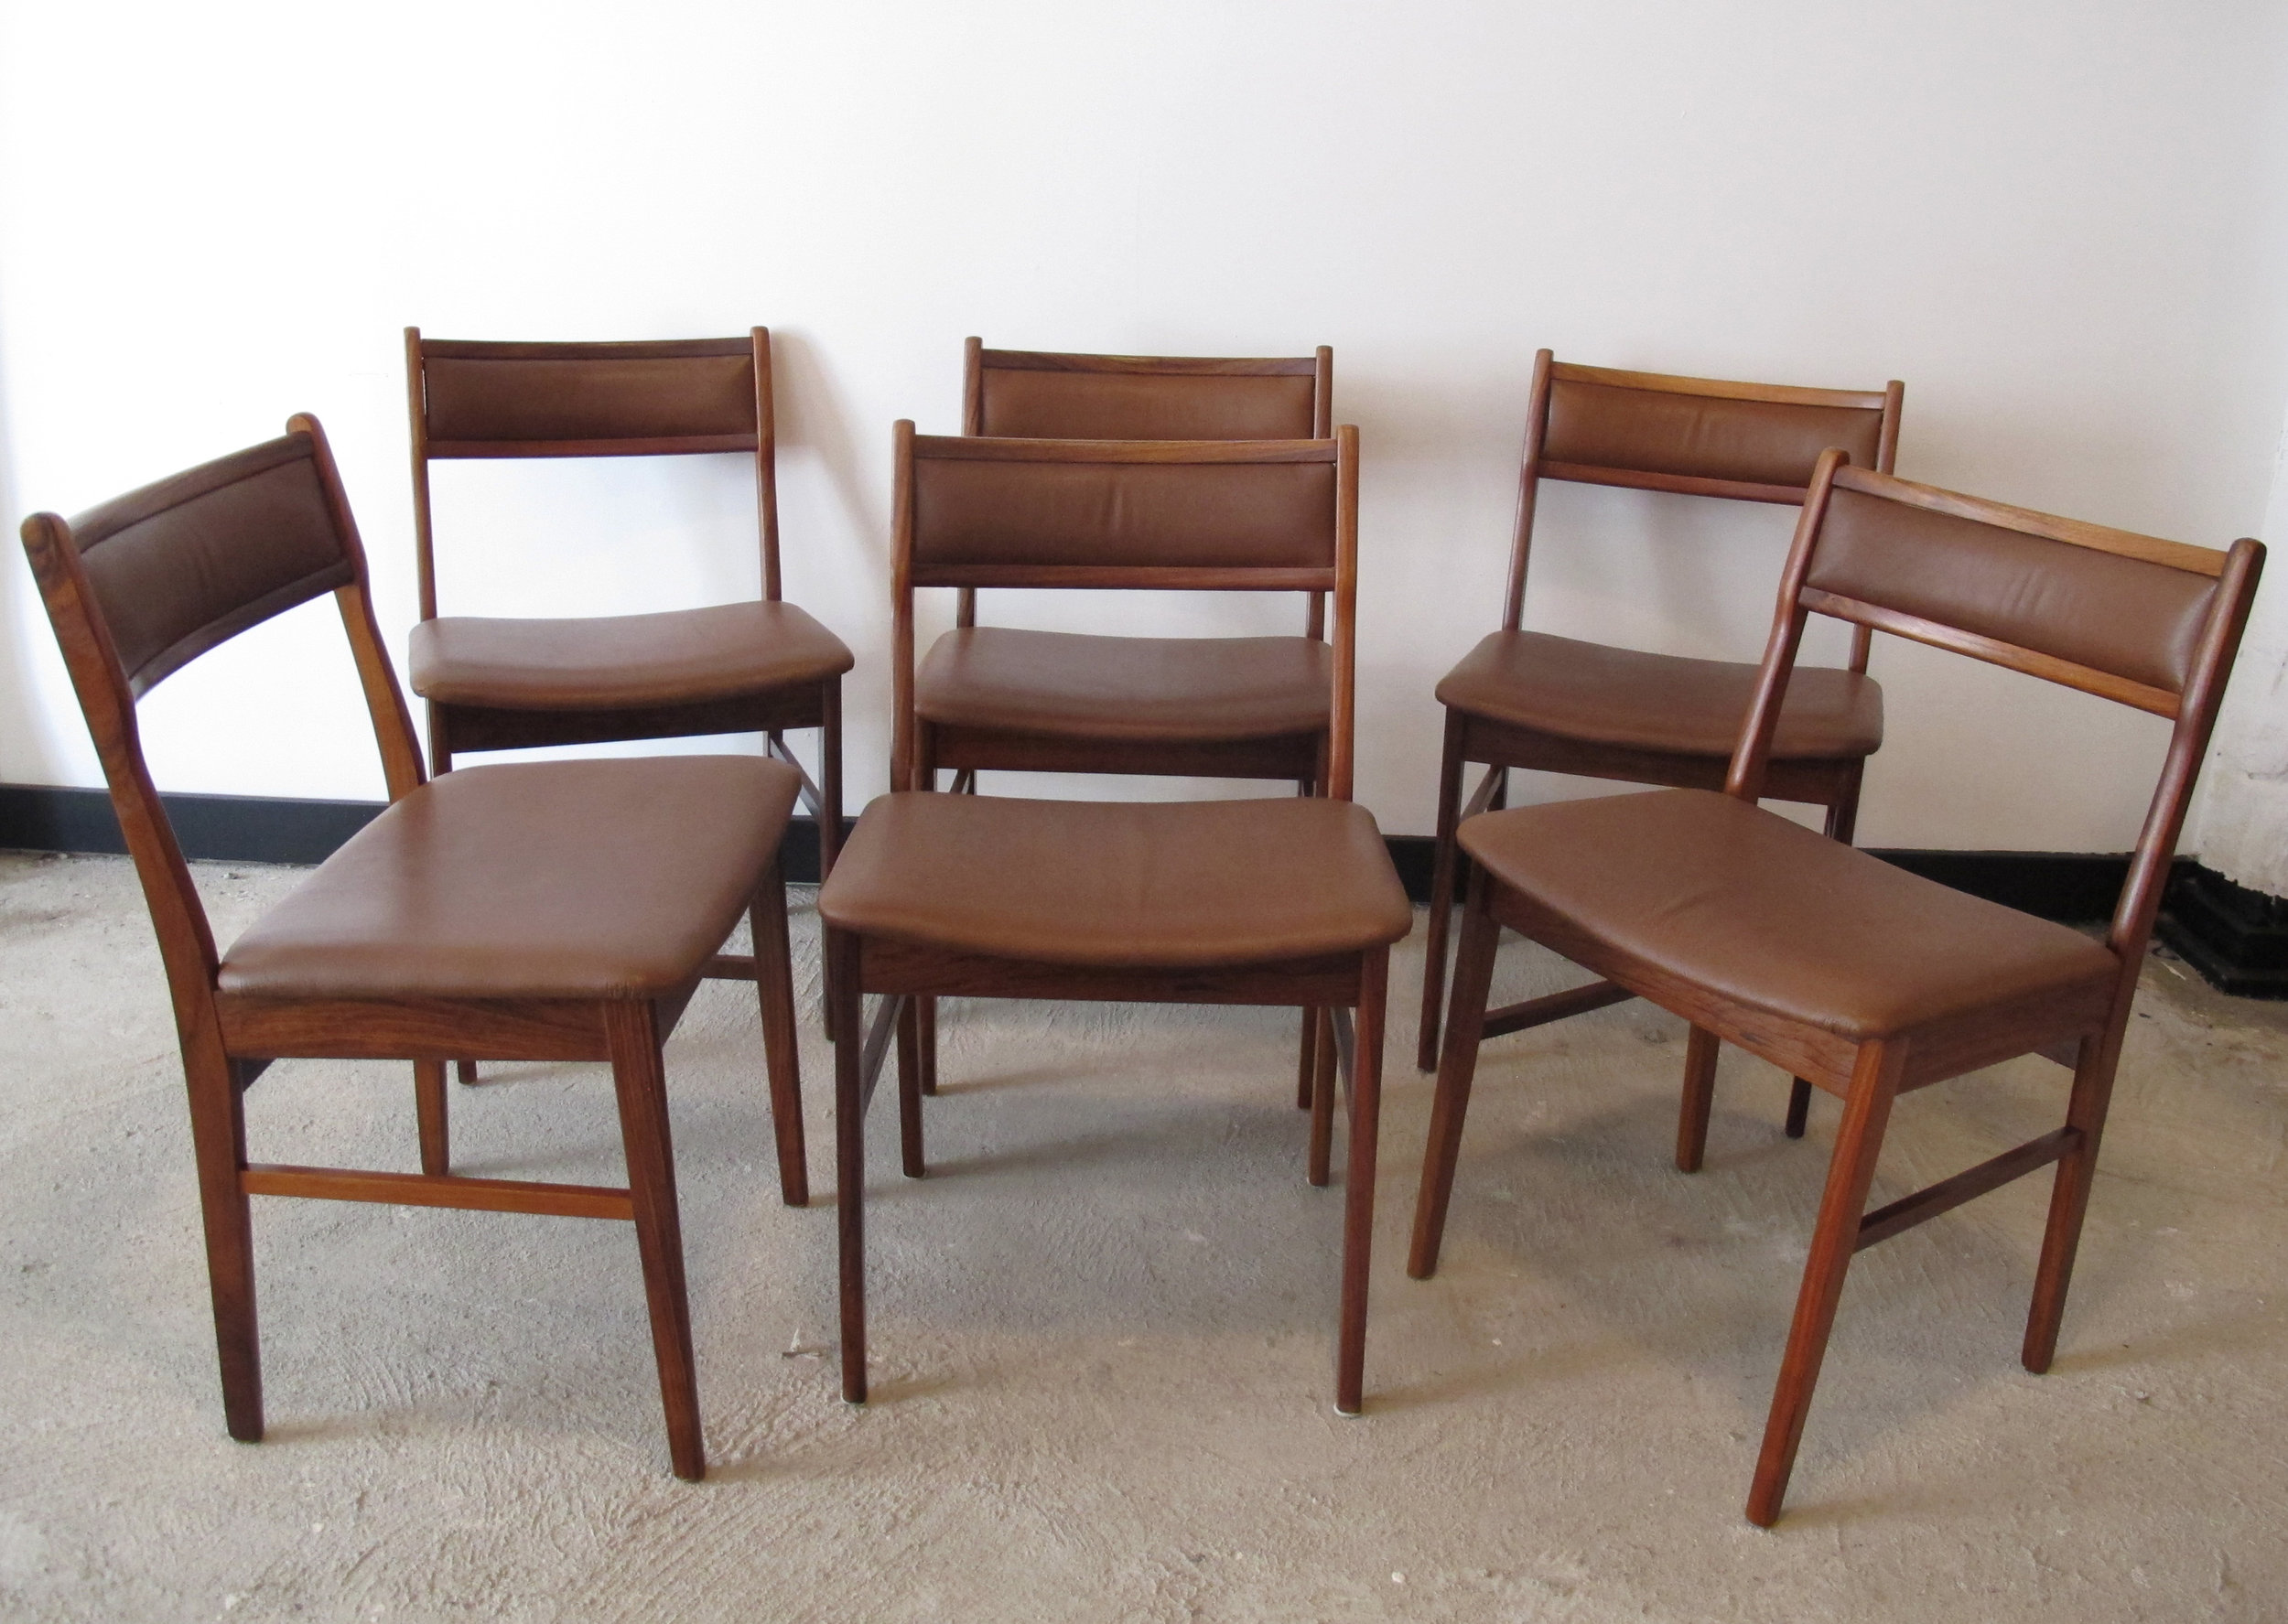 SET OF DANISH ROSEWOOD & LEATHER DINING CHAIRS BY VESTERVIG ERIKSEN